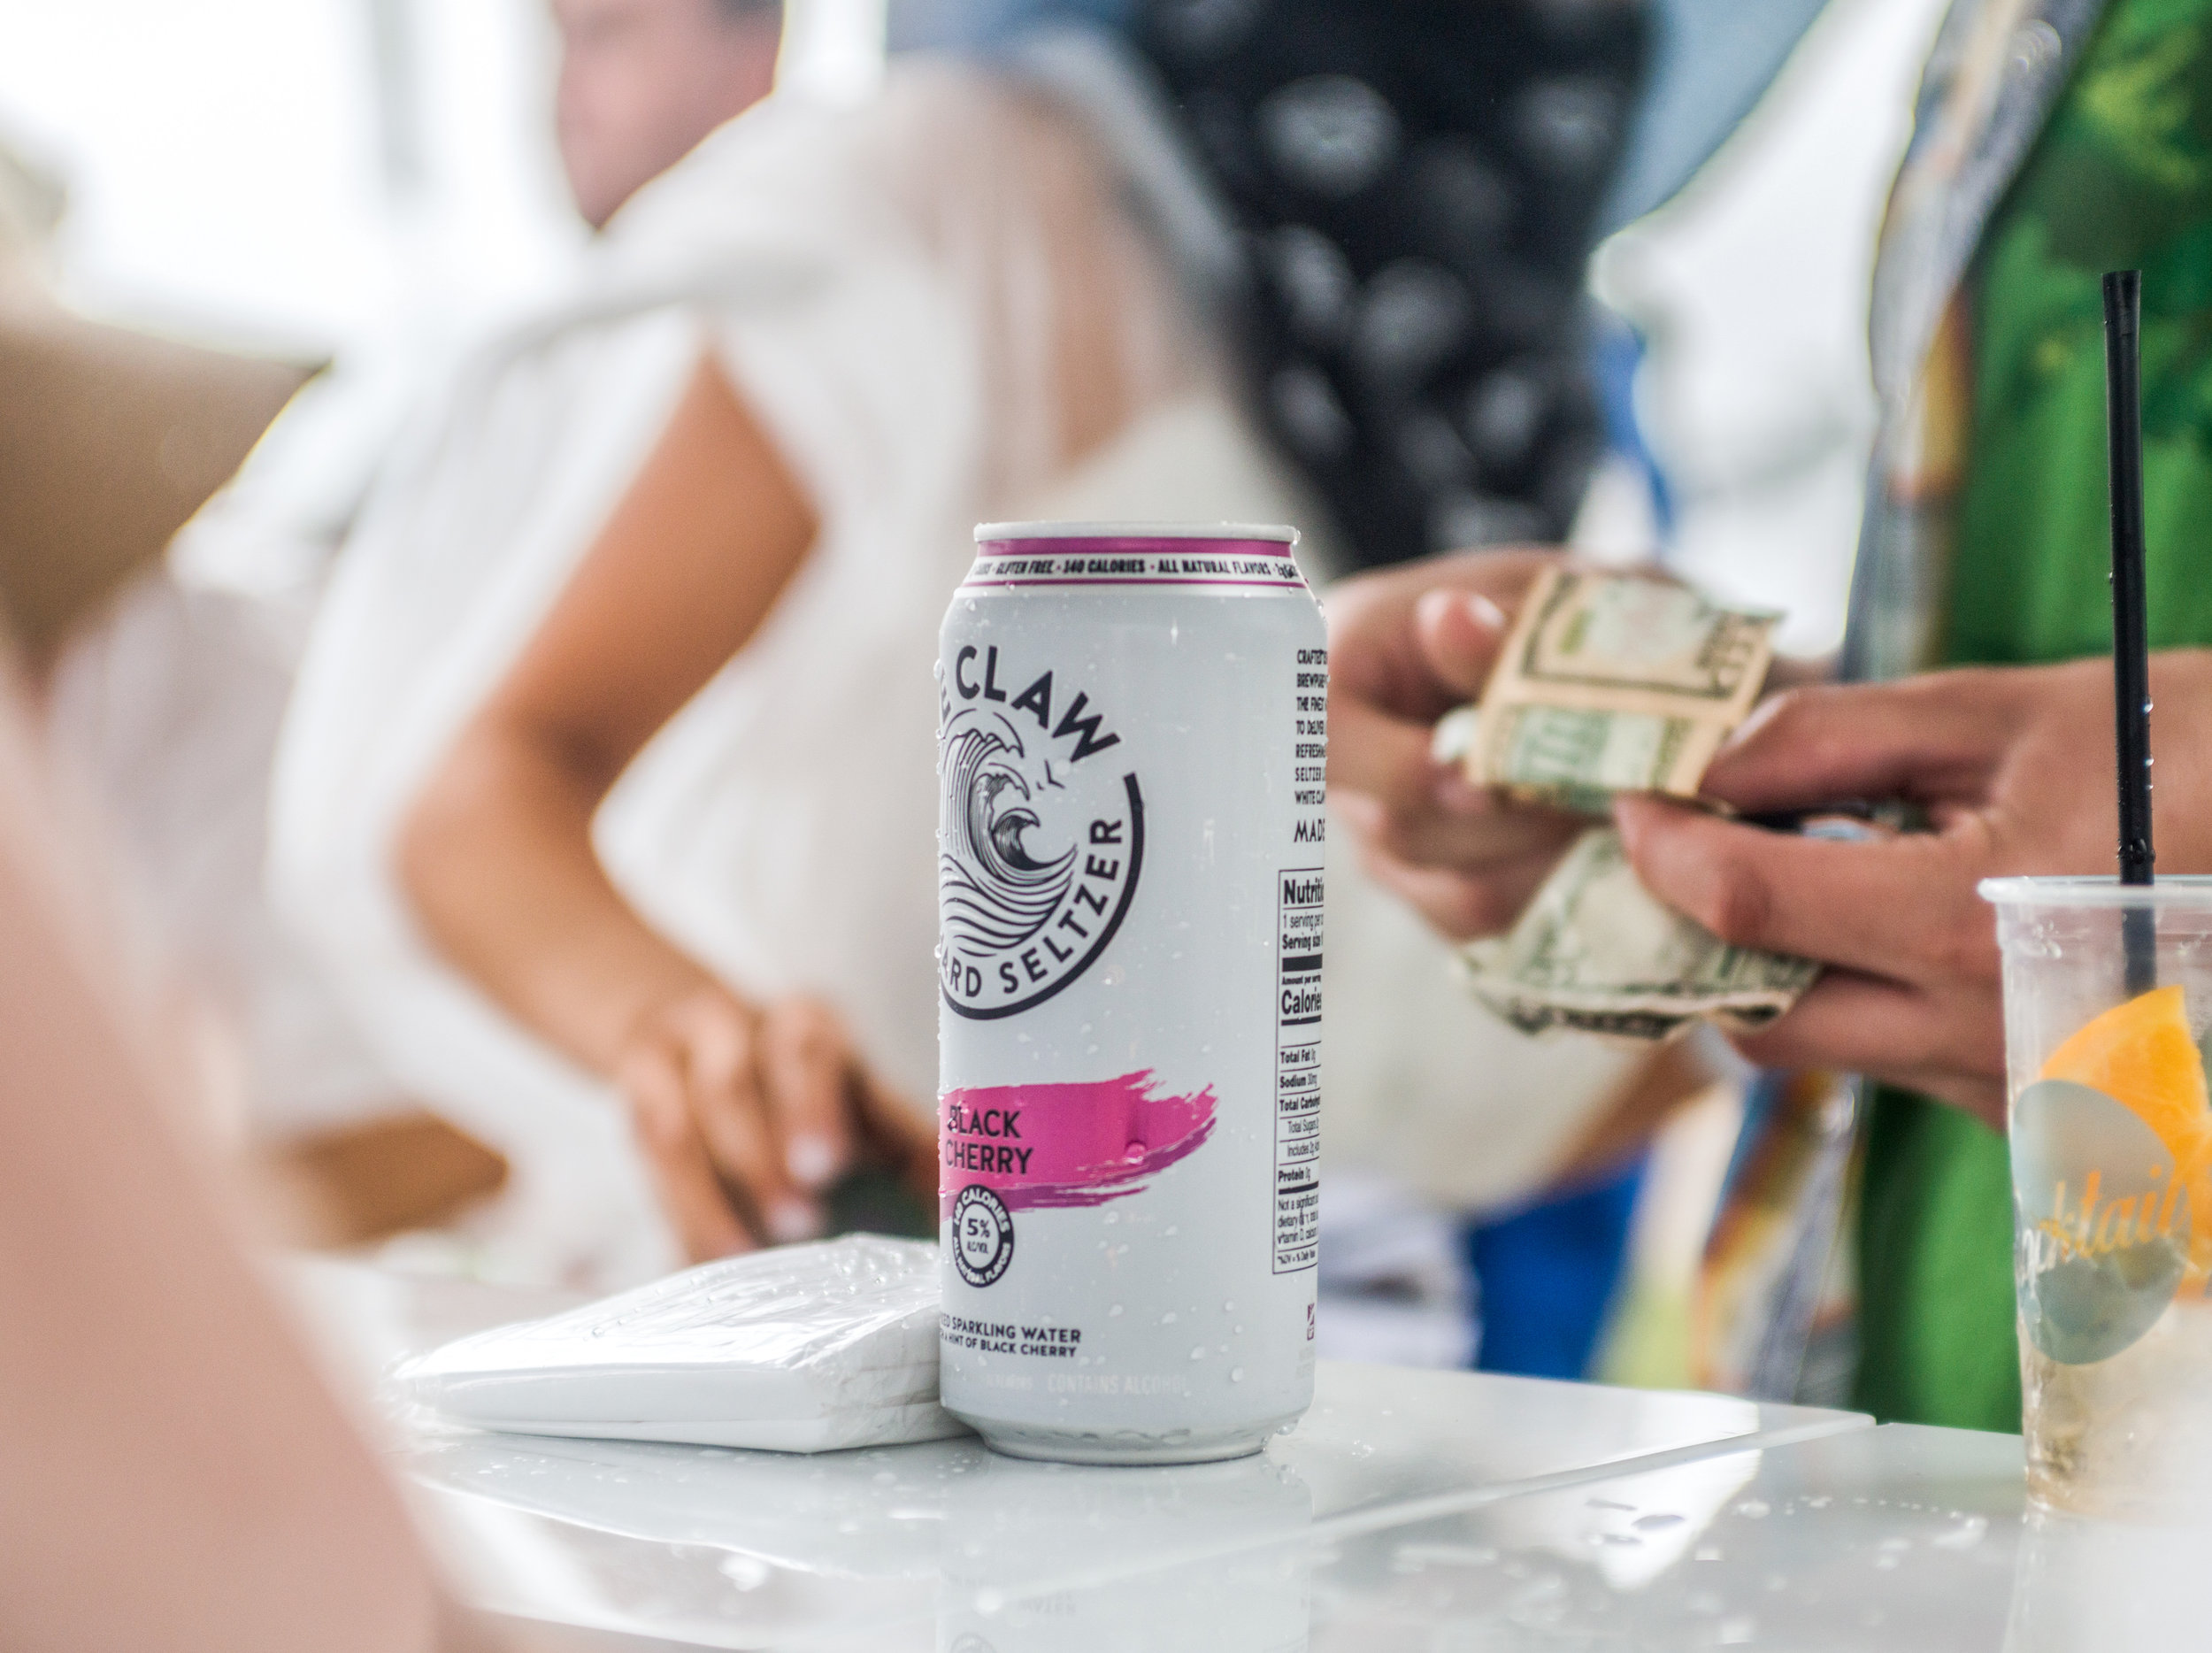 OHelloMedia-WhiteClaw-KentuckyDerby-TopSelect-13.jpg